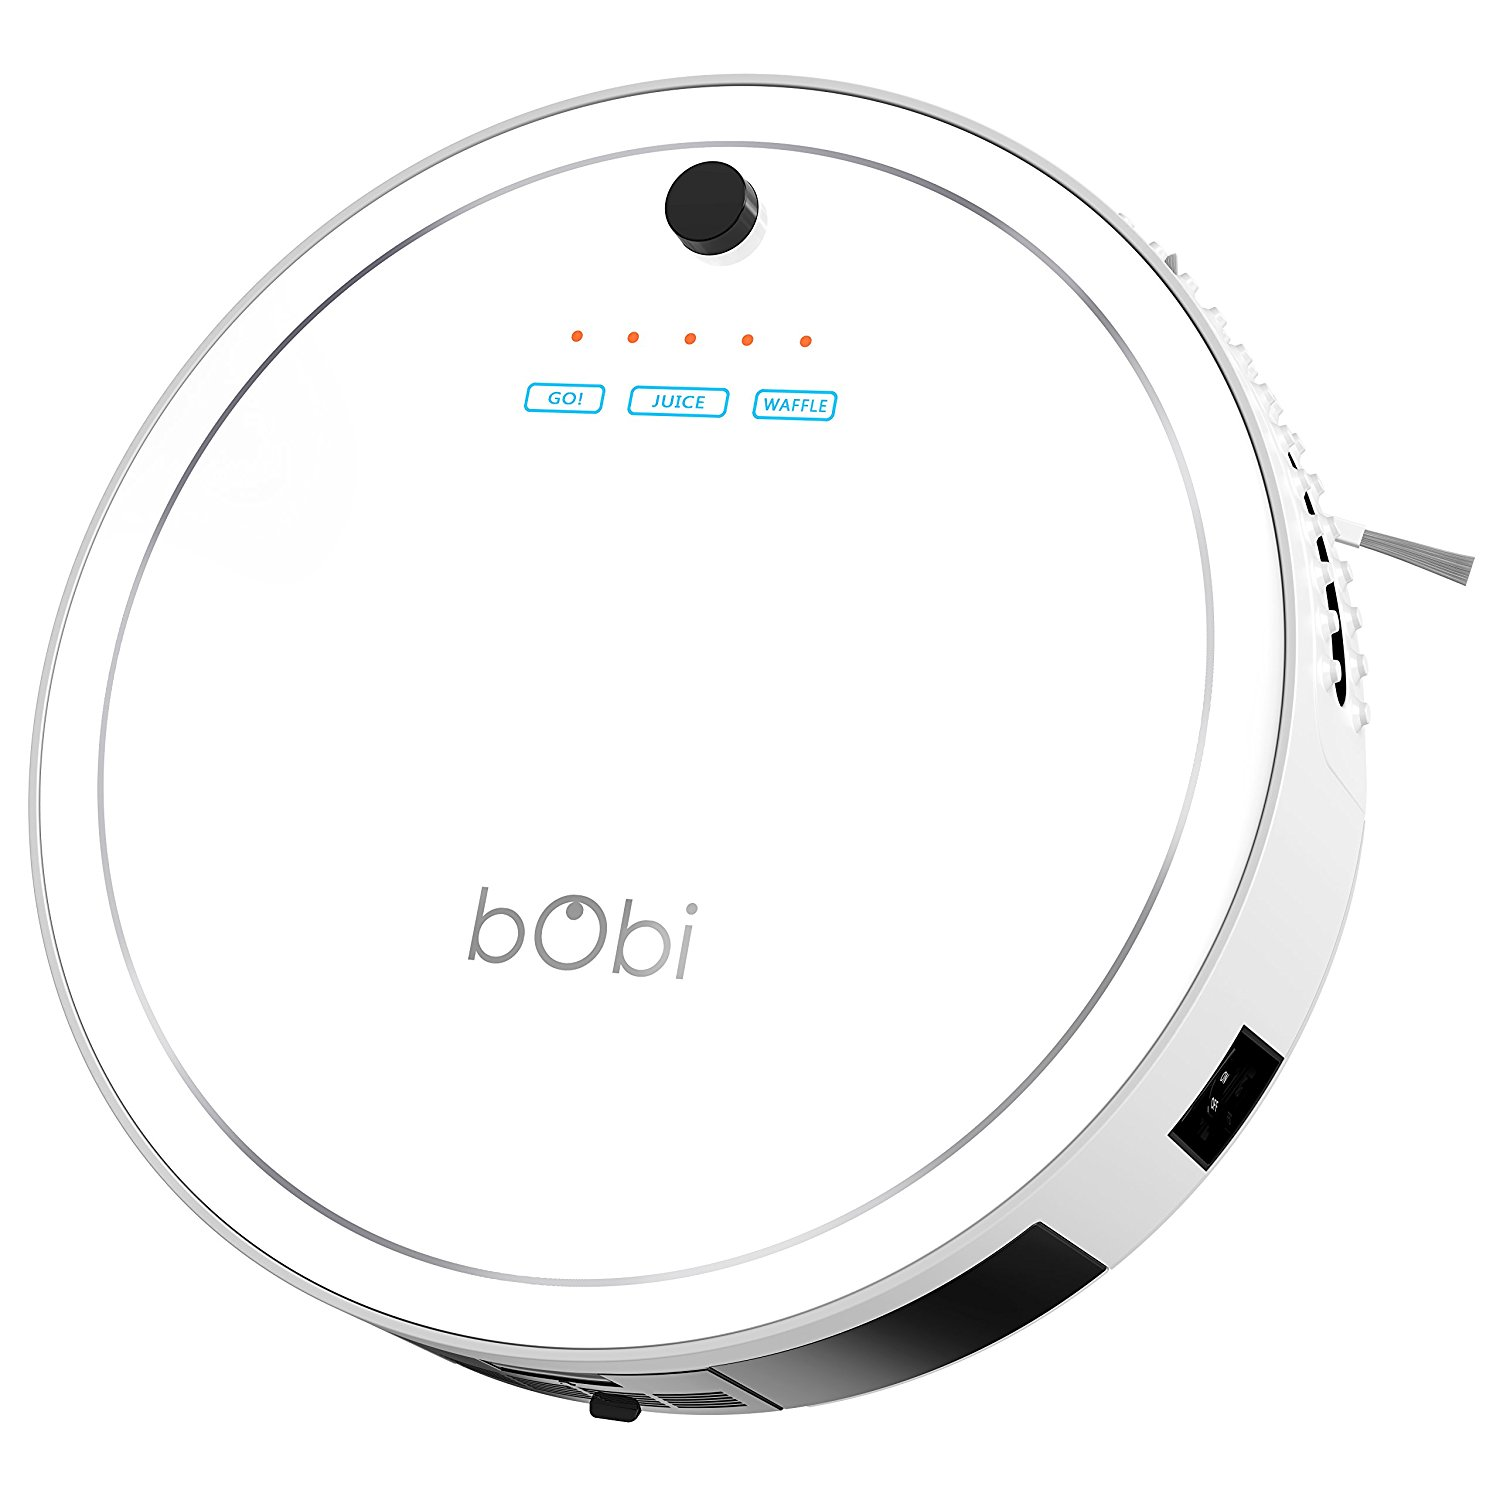 bObi Classic Robotic Vacuum Cleaner Review